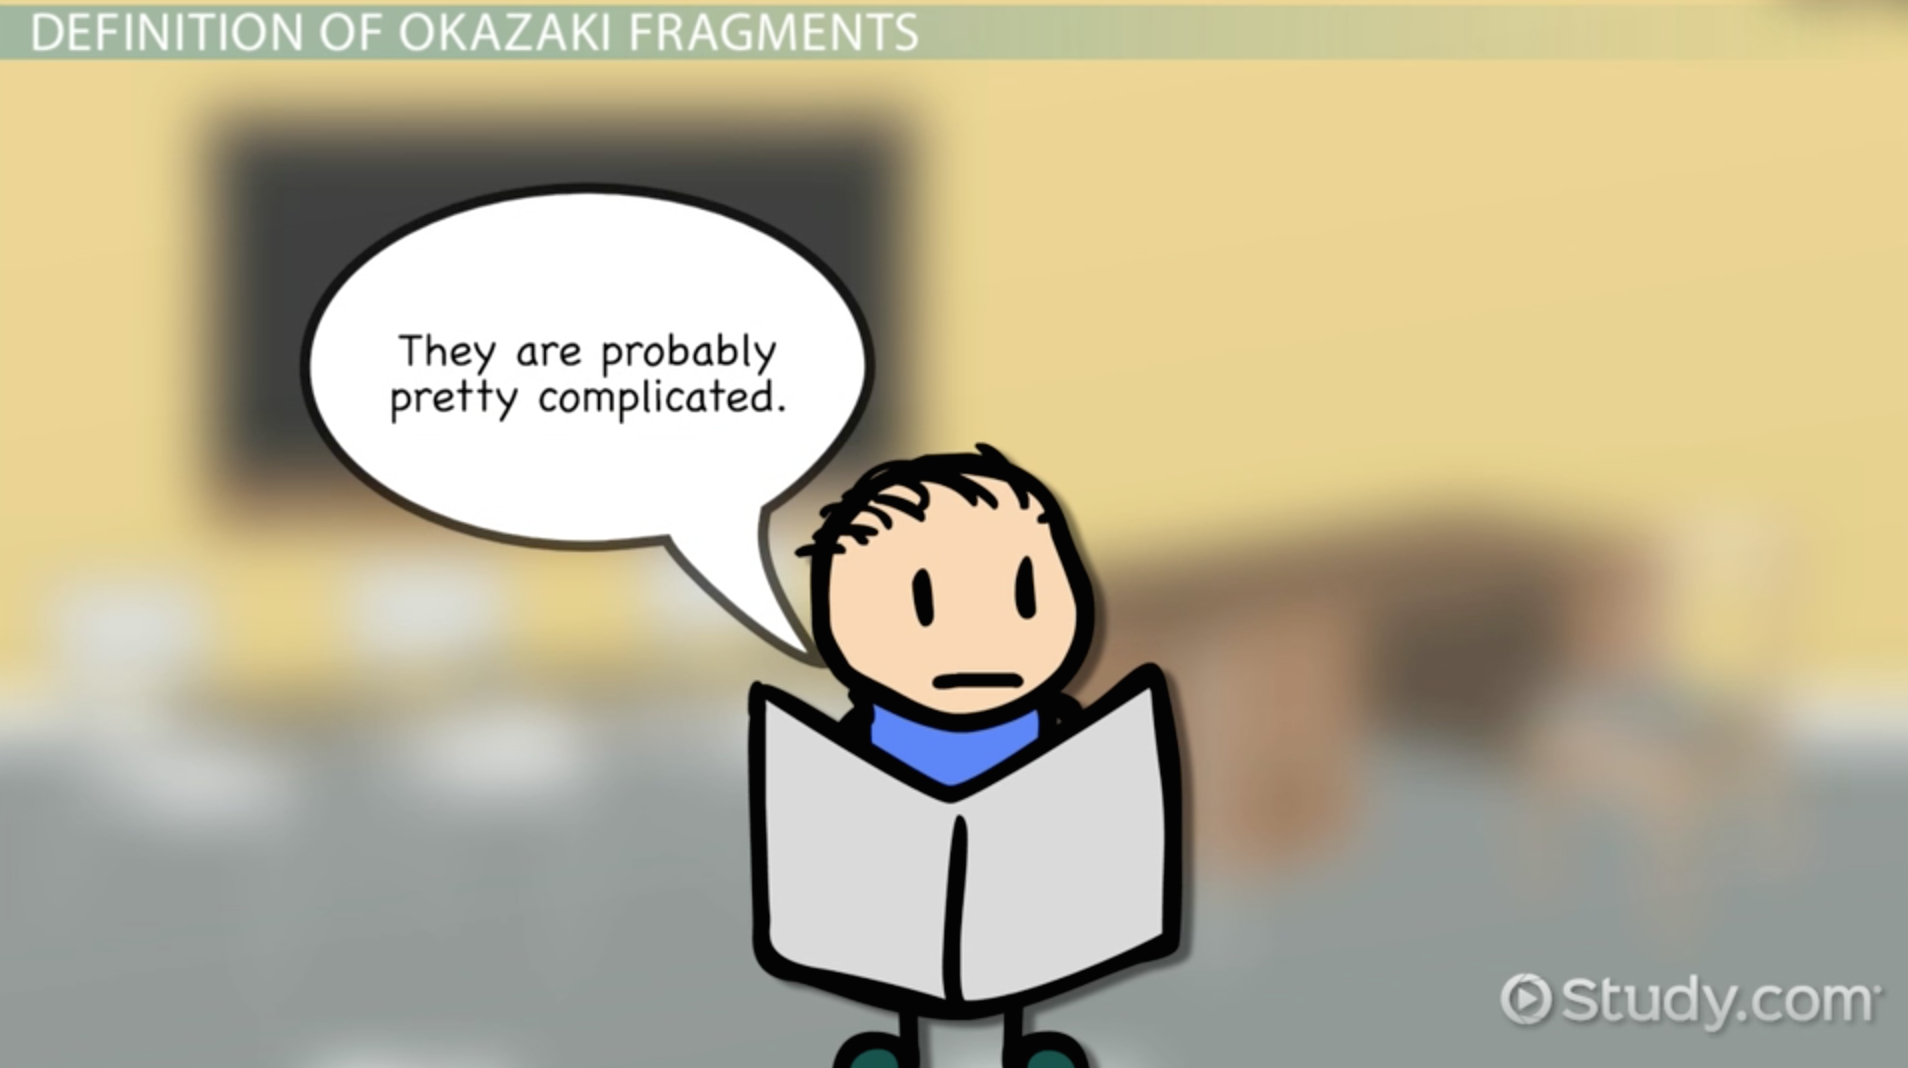 okazaki fragments  definition  u0026 overview